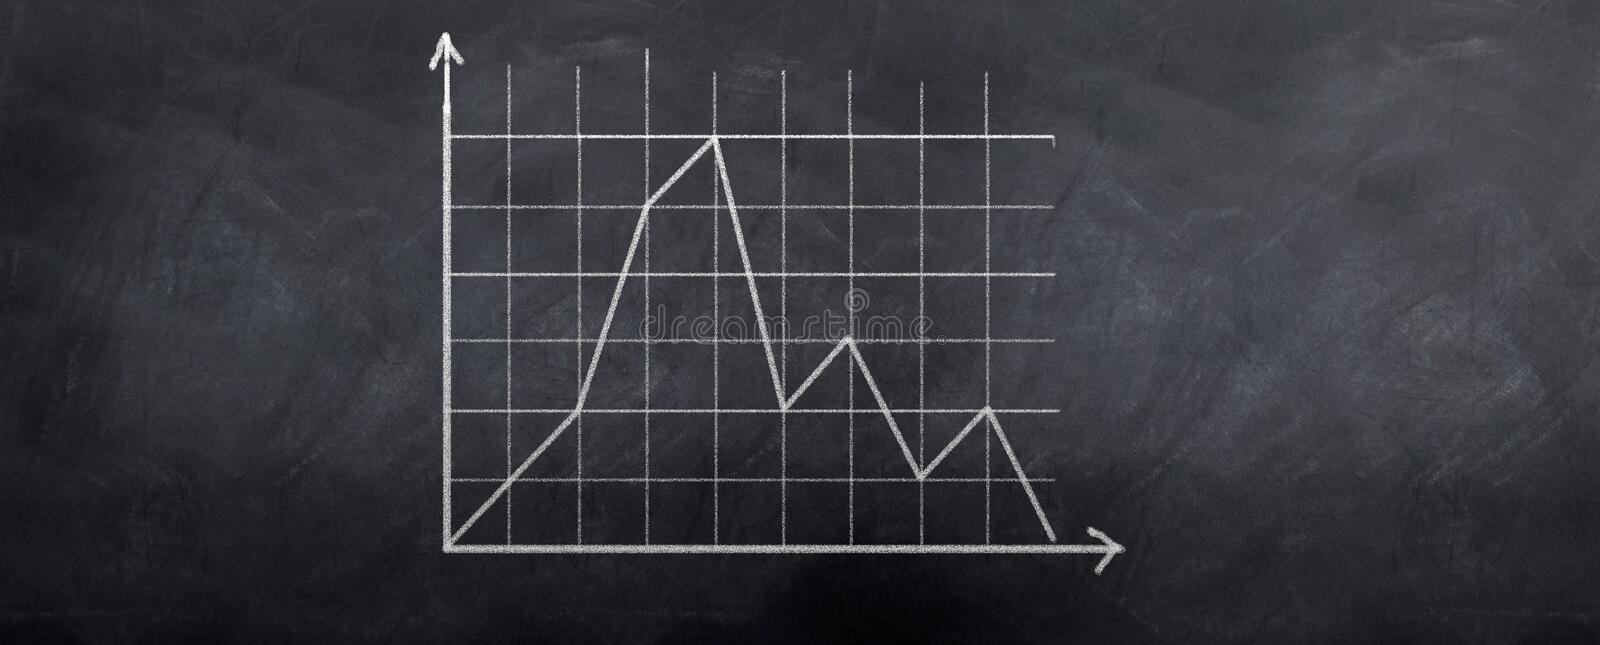 Stock dropping. A graph showing a stock in decline over time. Written in chalk on a blackboard vector illustration